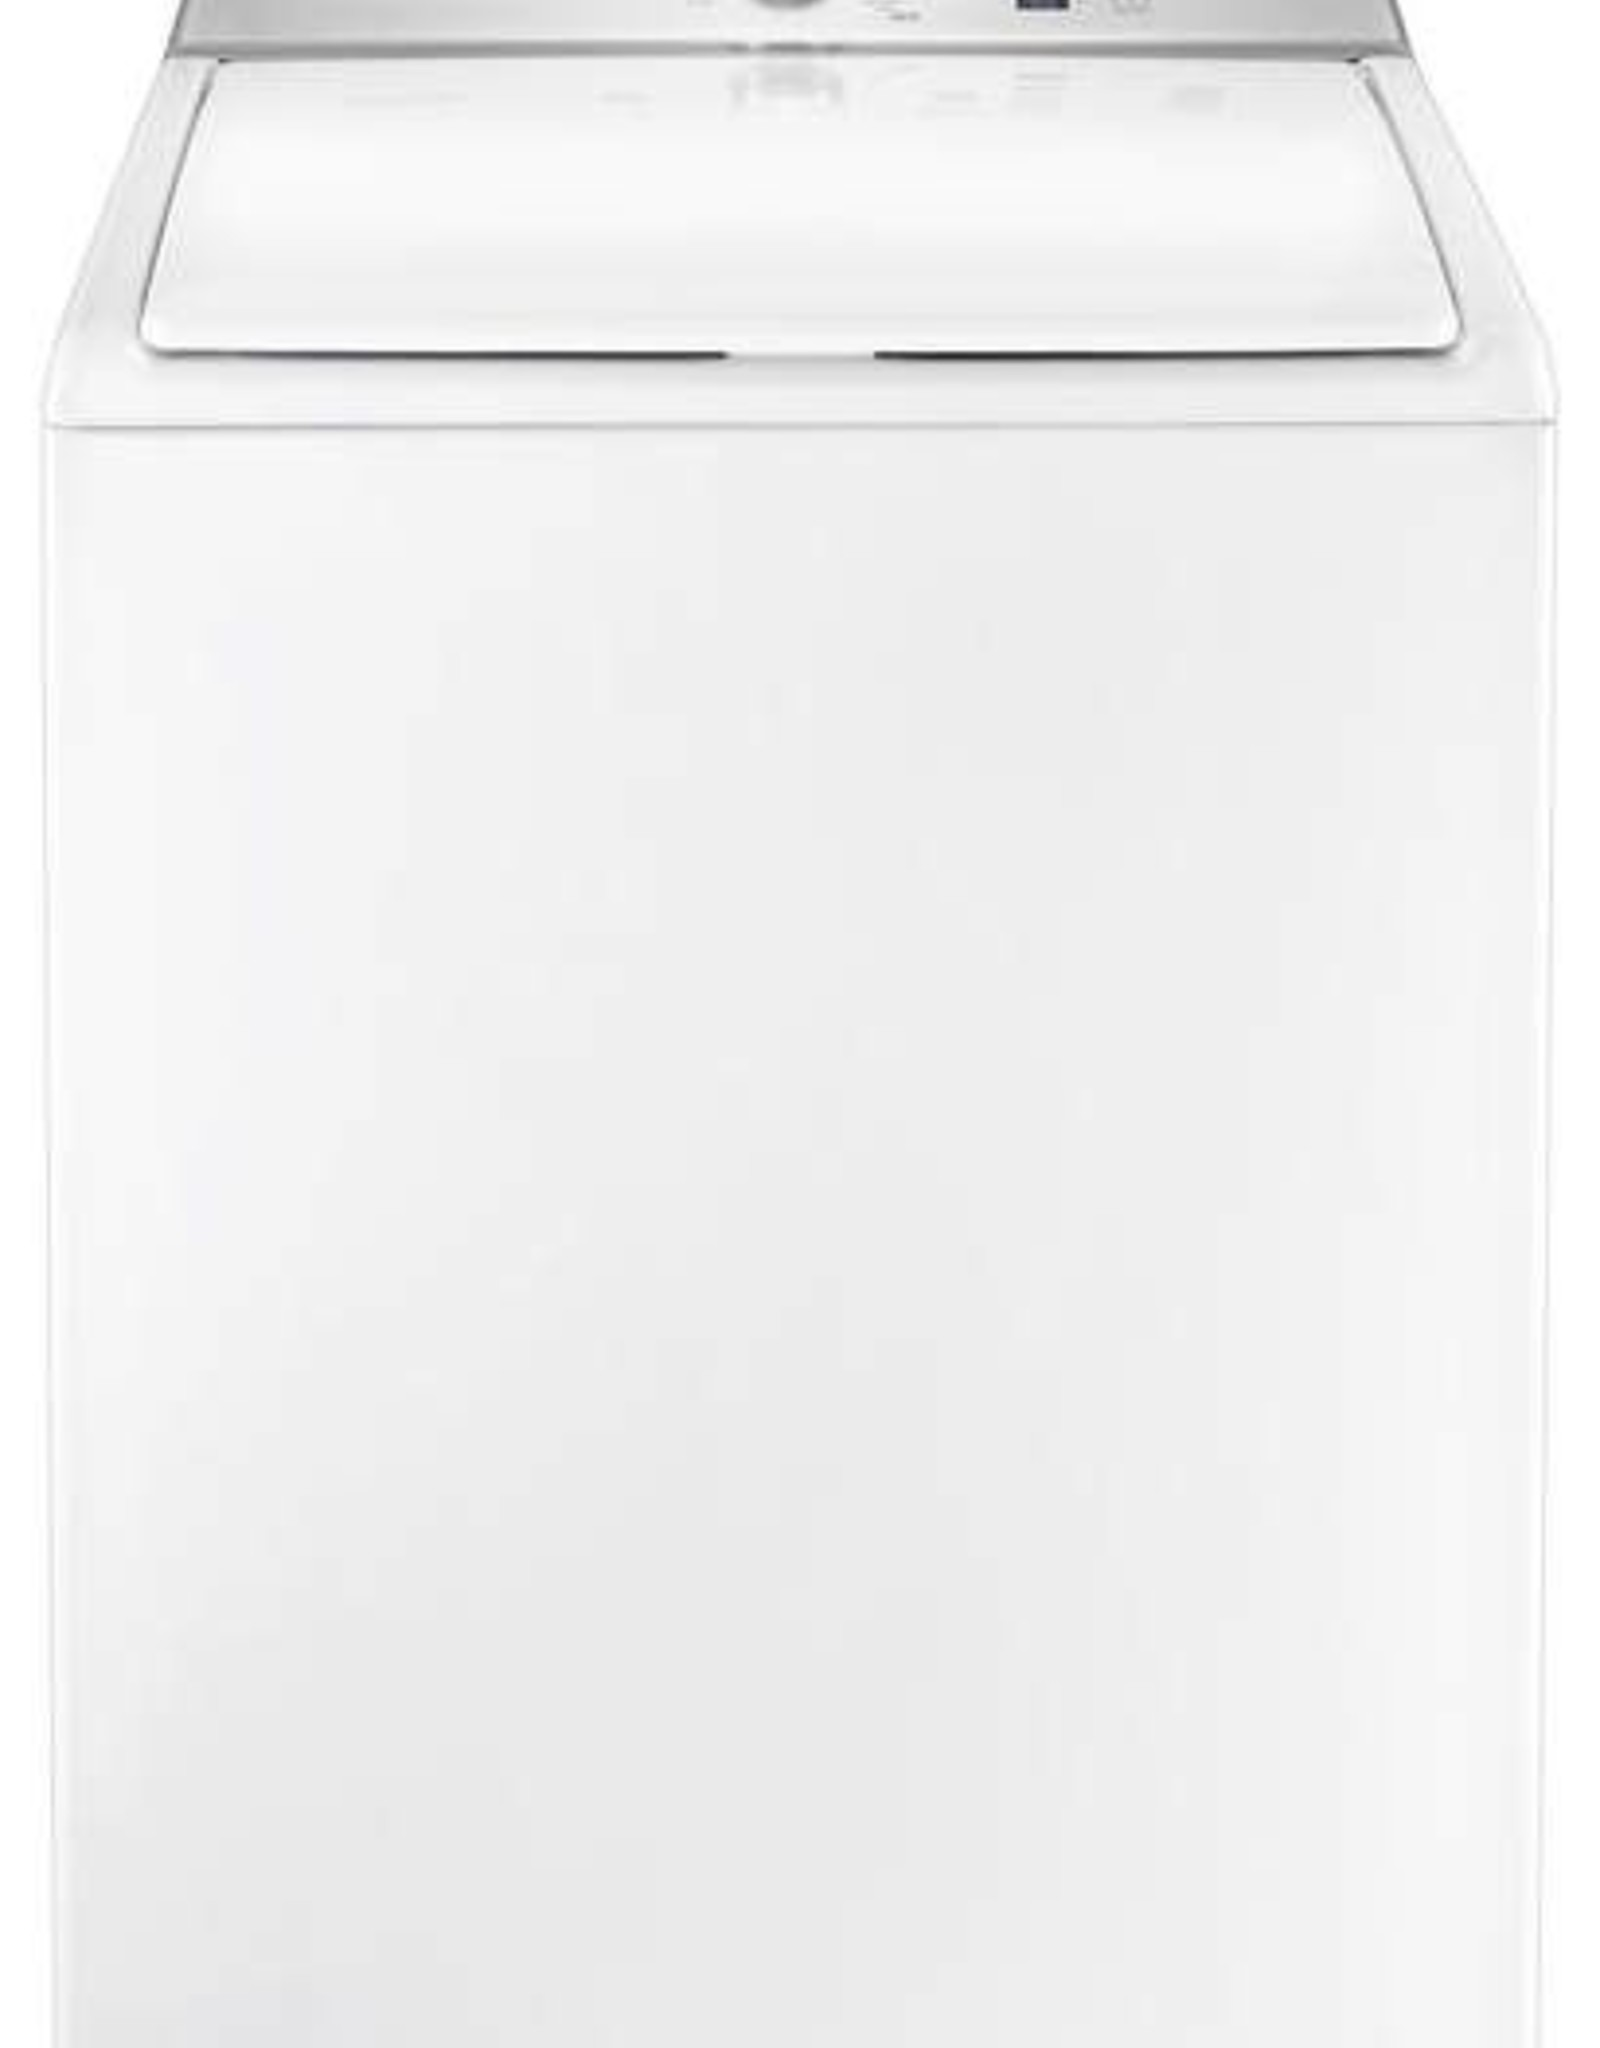 CLS 4.7 Crosley Pro Washer